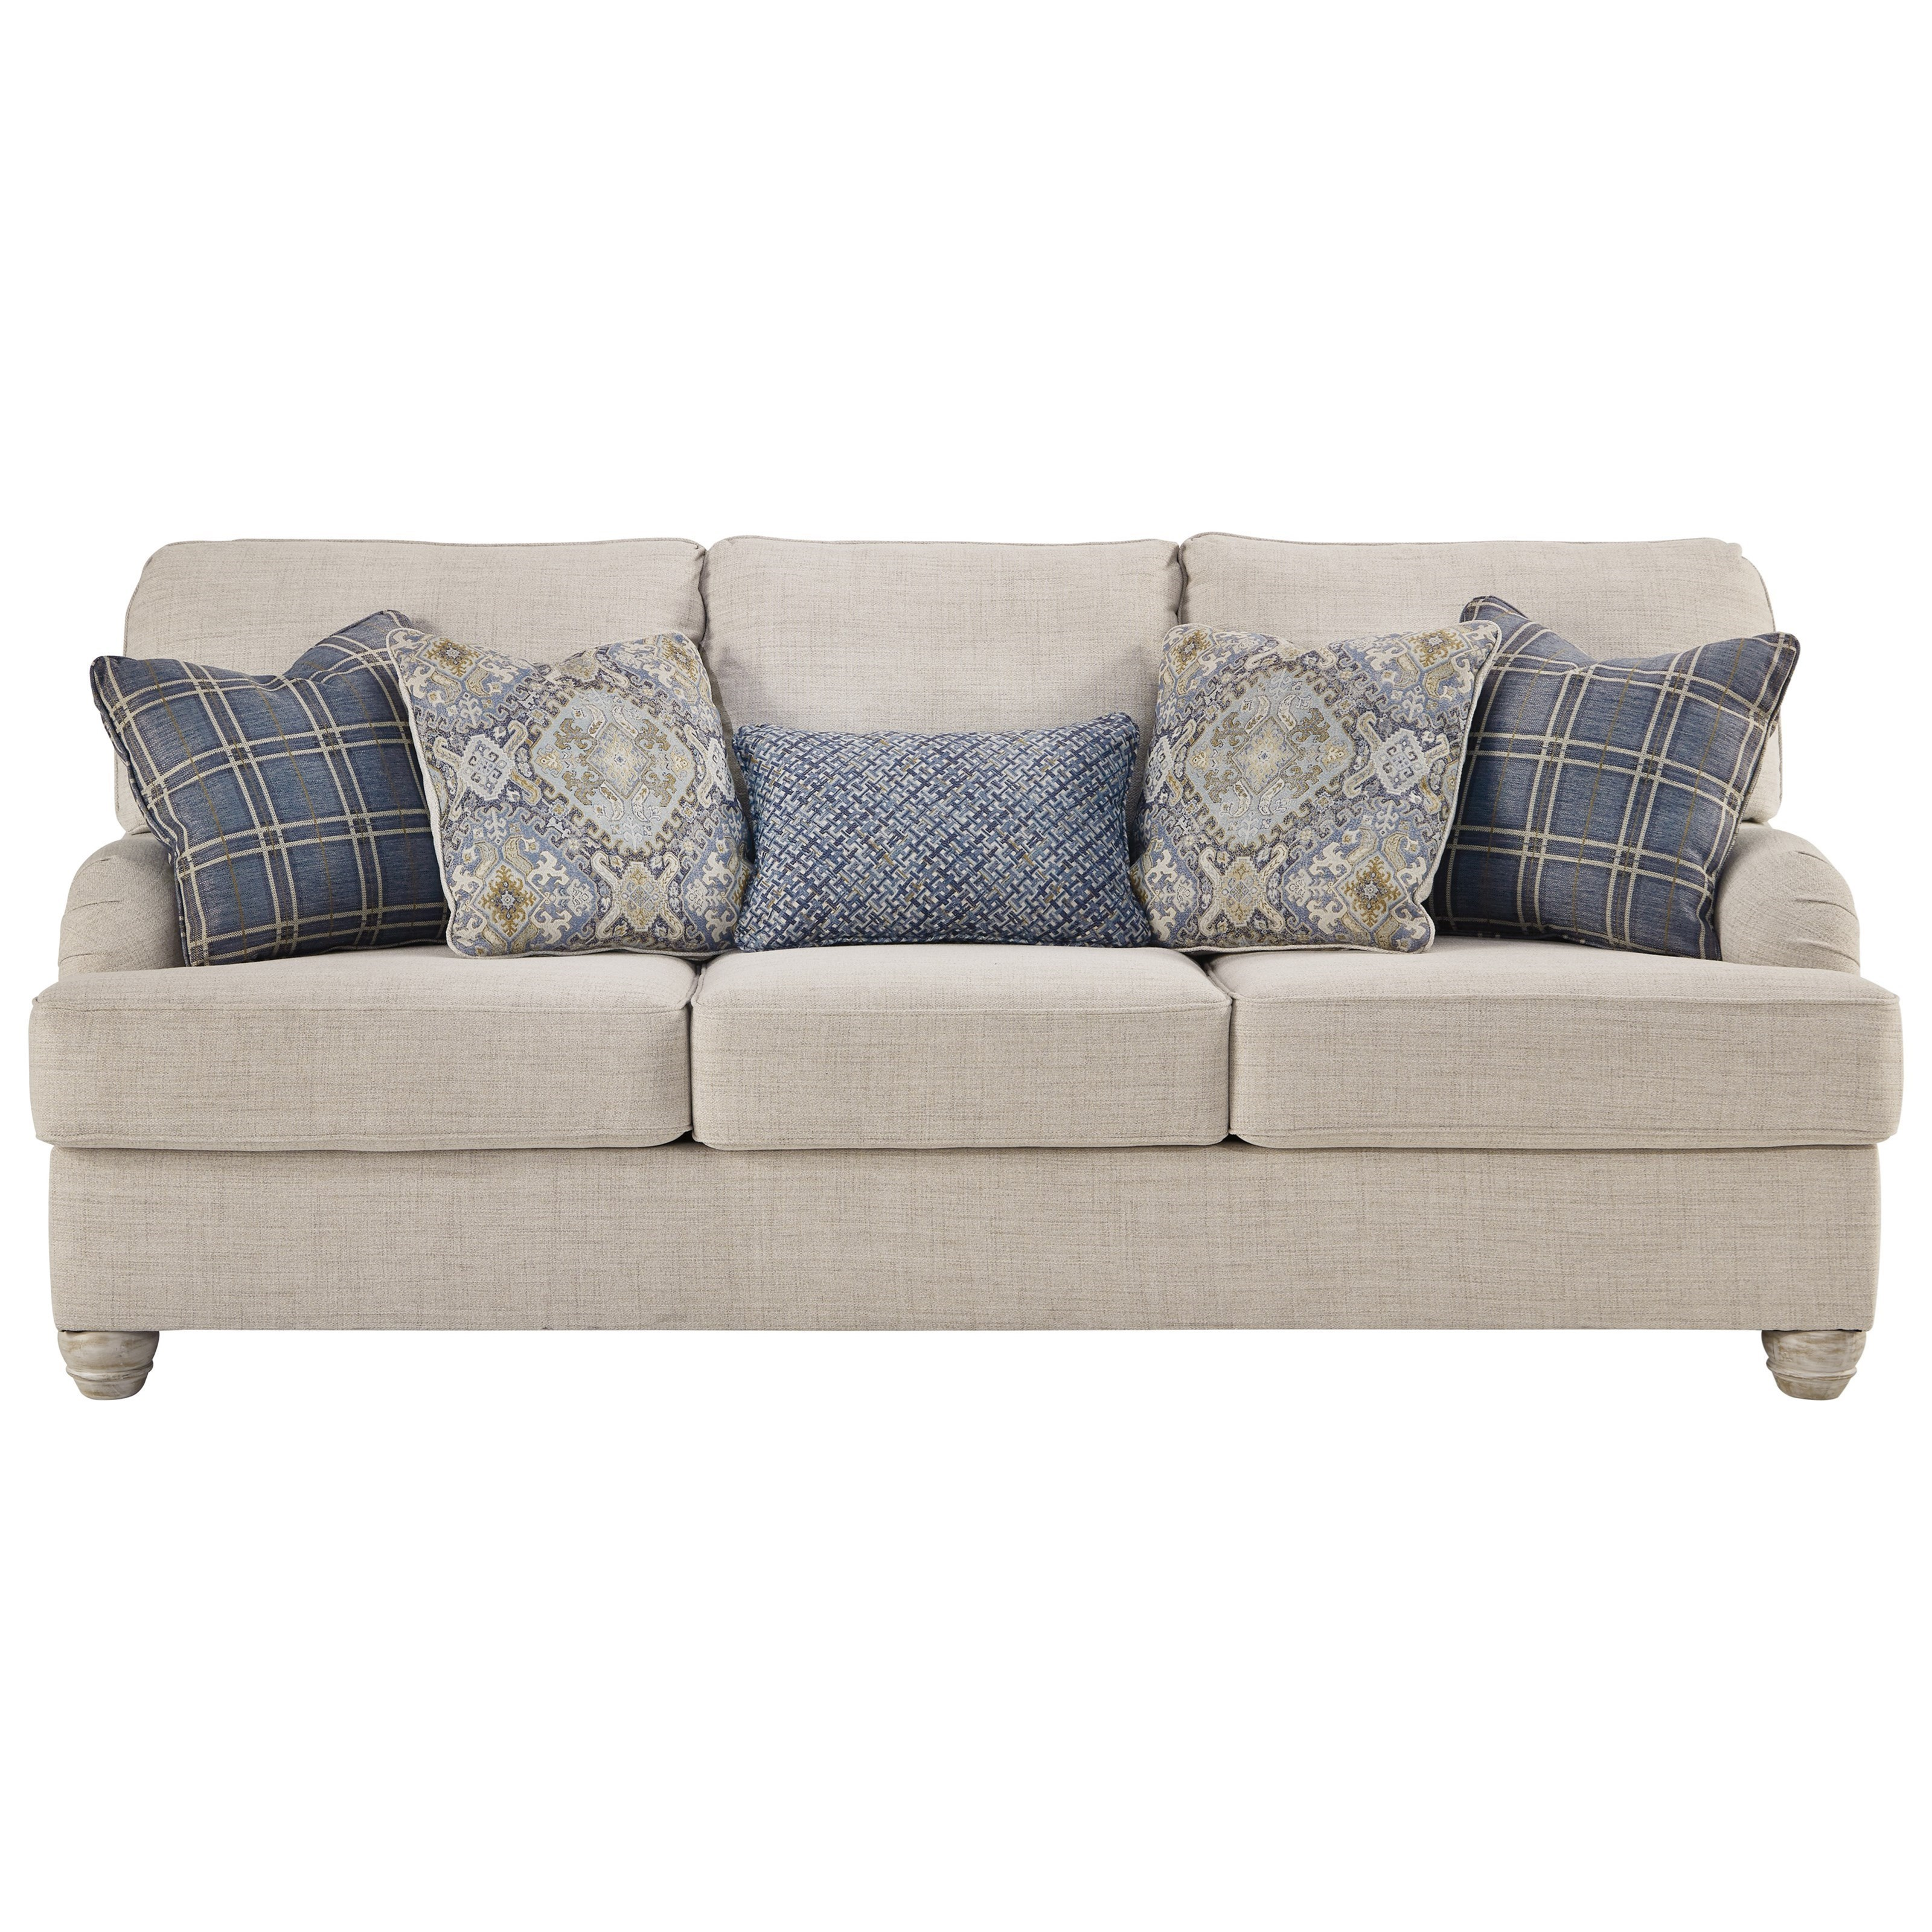 Benchcraft Traemore Transitional Sofa With English Arms